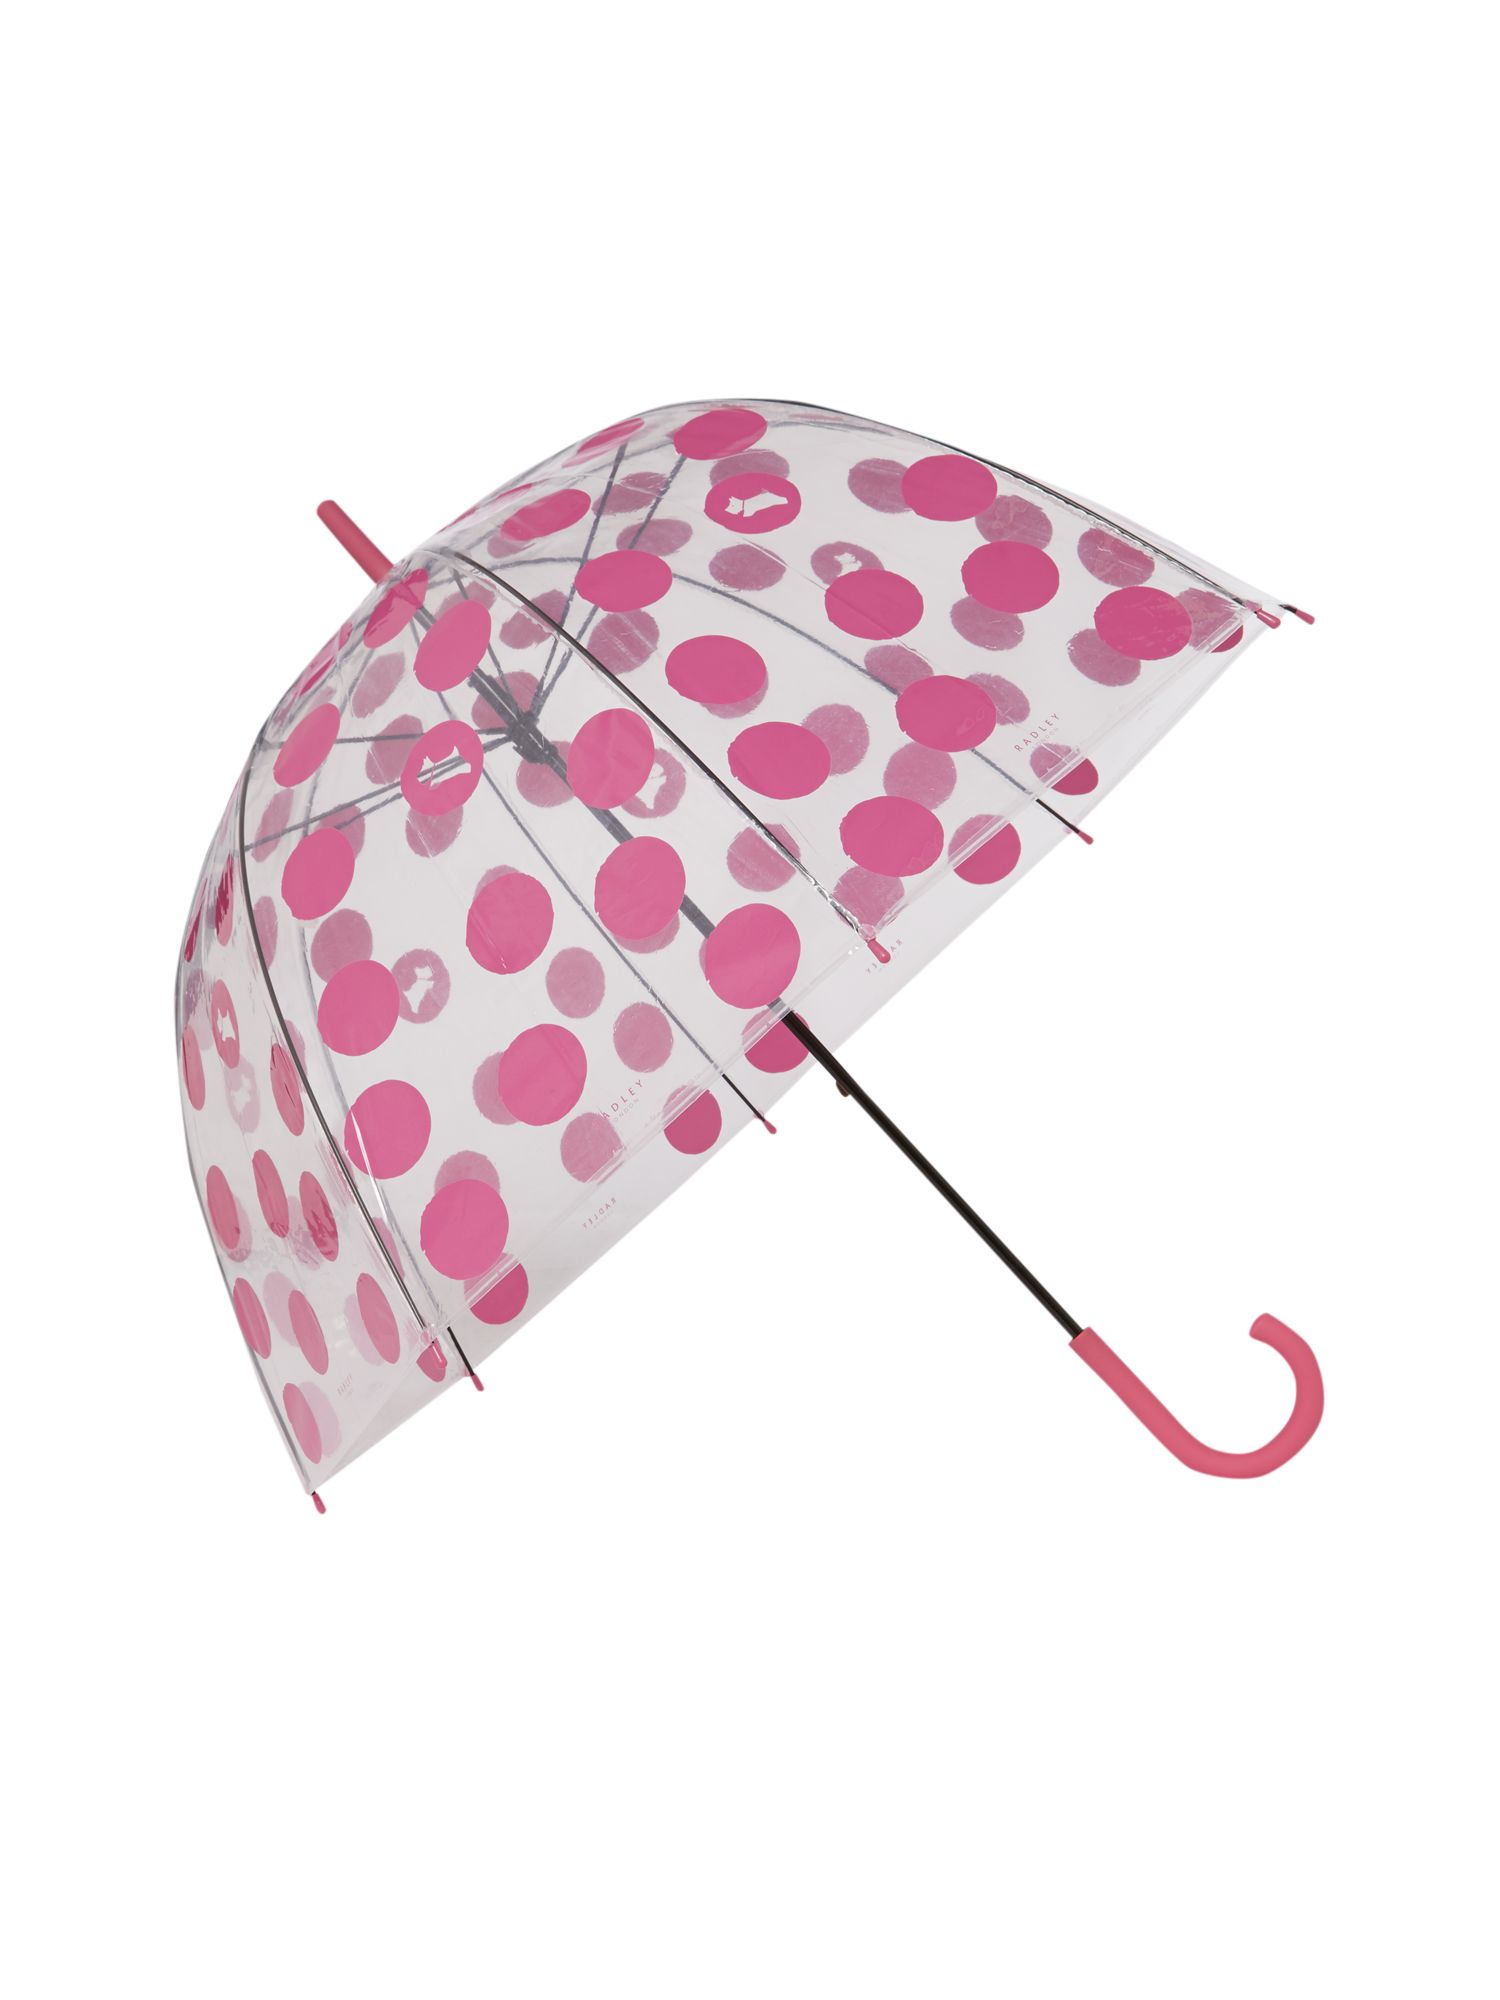 Moon dots walker umbrella